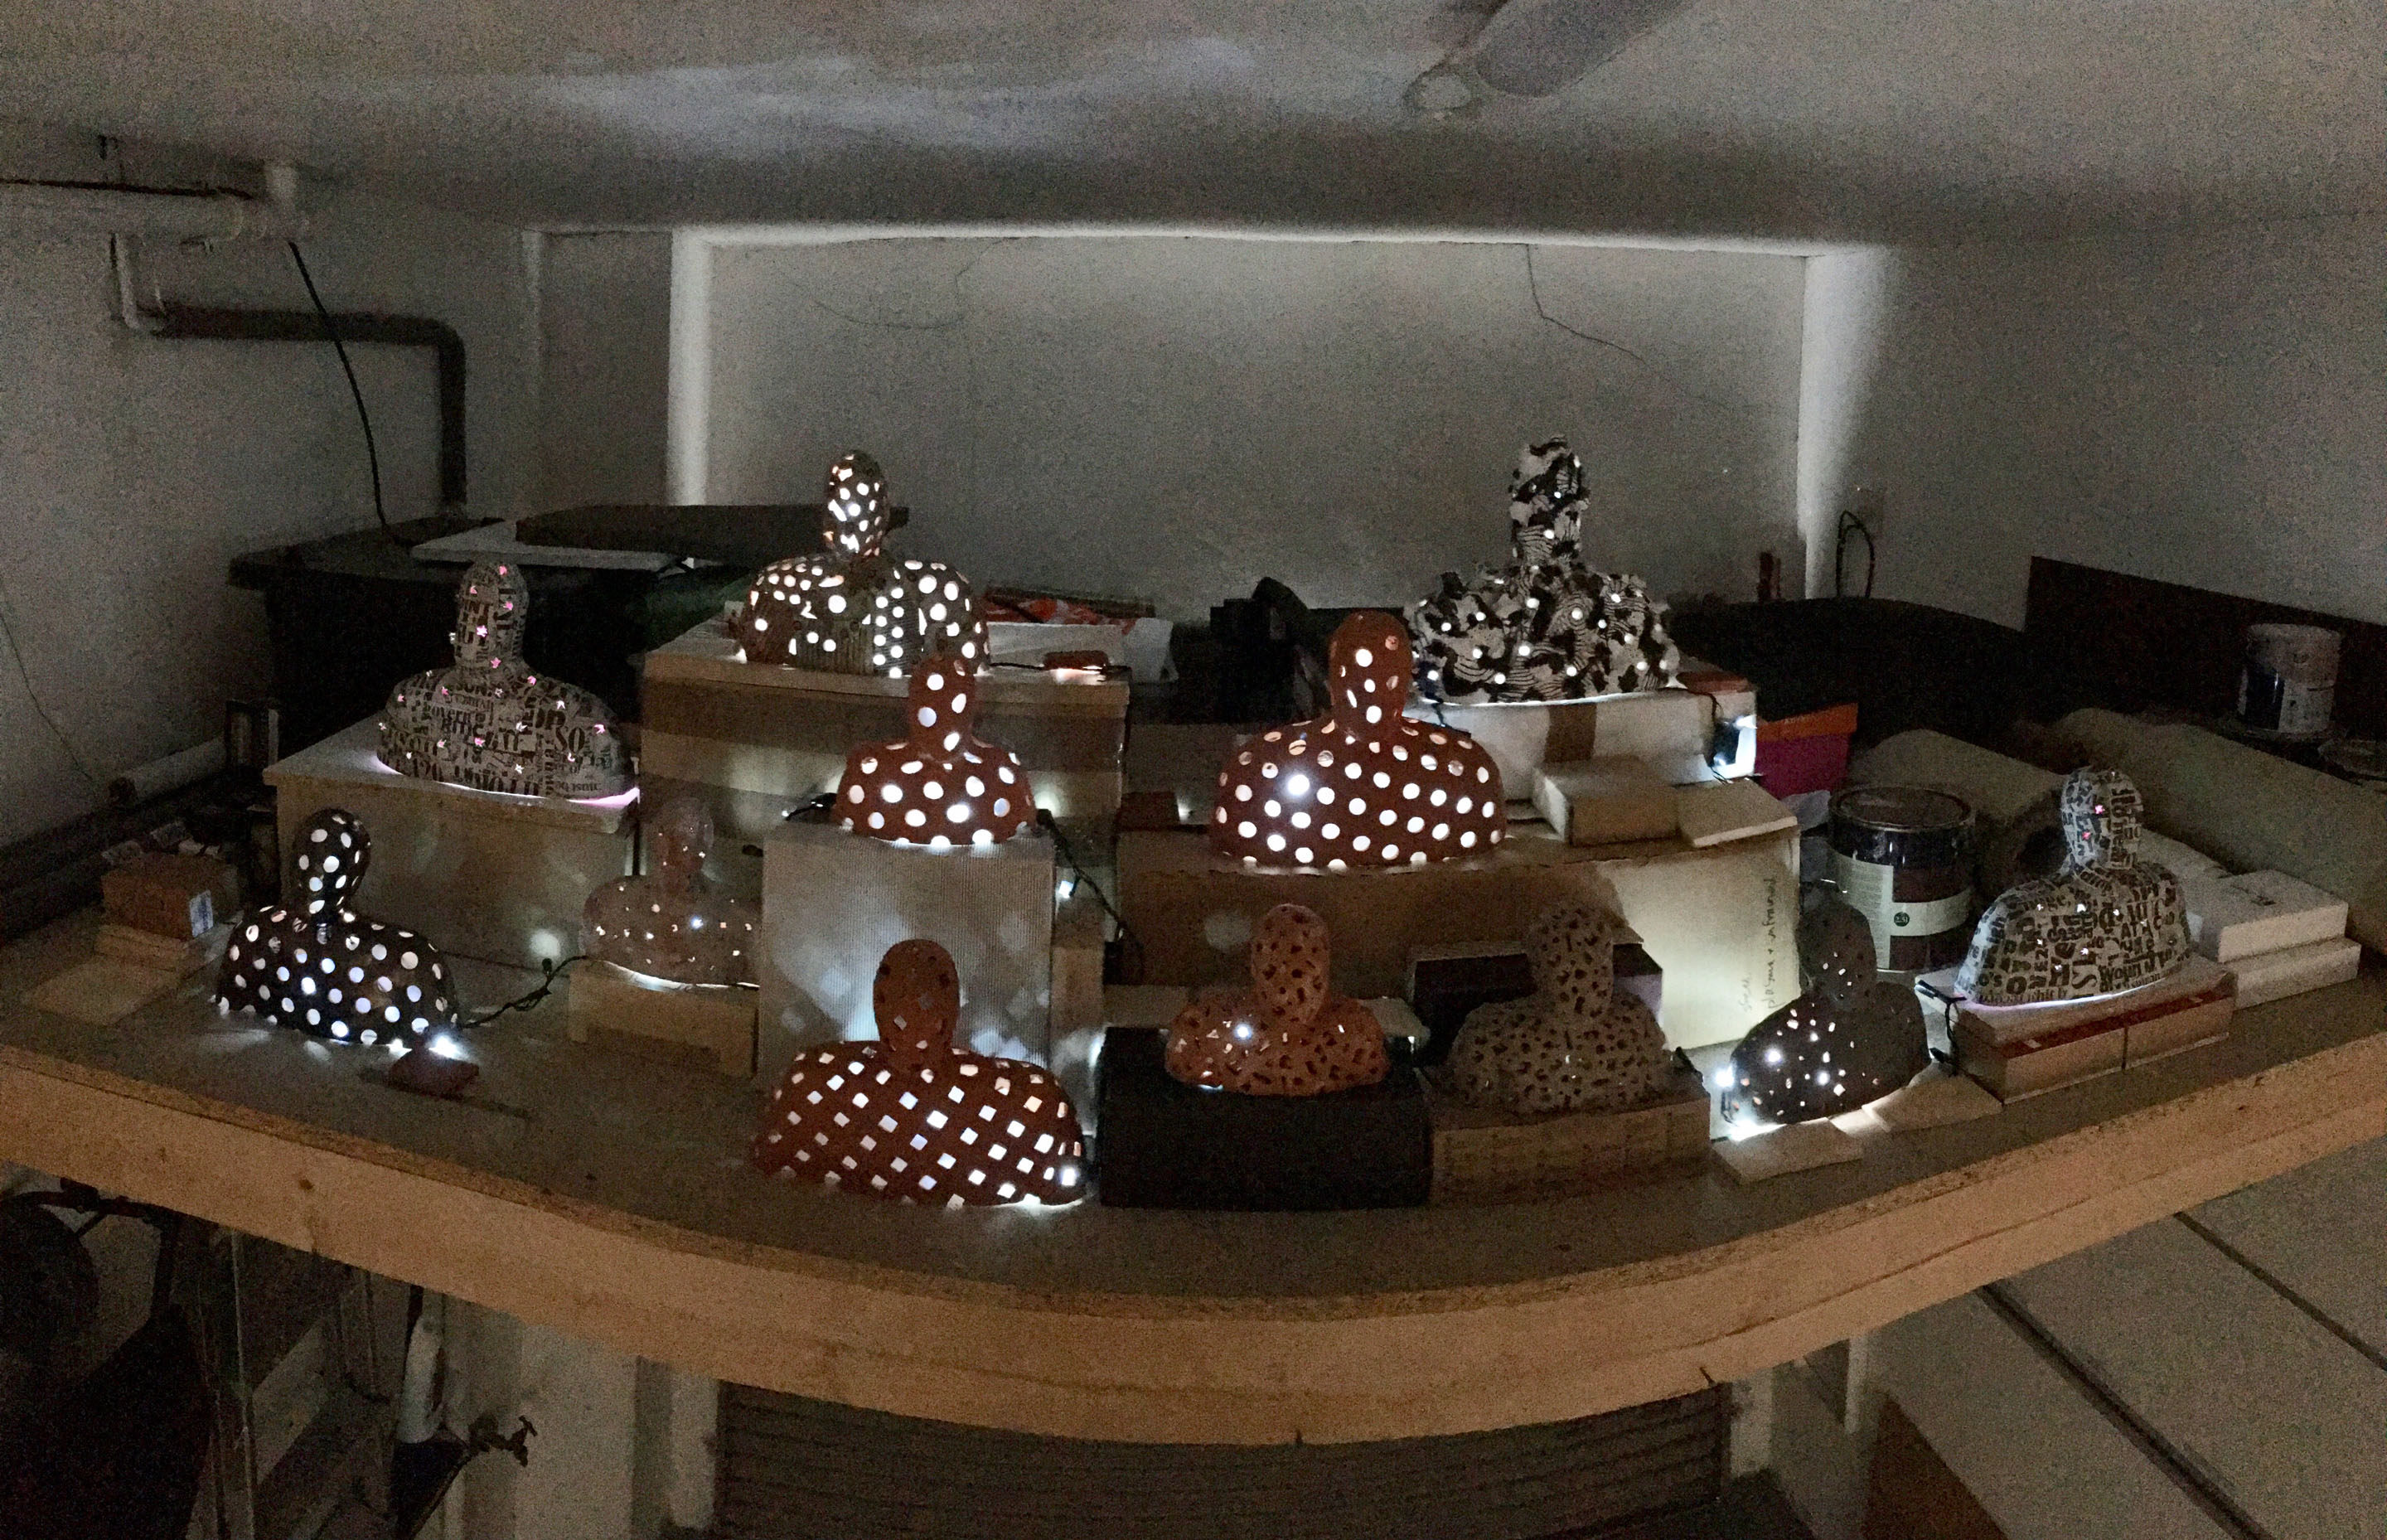 A panorama view of a developing installation of 13 or more figures in glazed and unglazed terra-cotta, plaster and papier mache illuminated by LED lights on stands made of cardboard and mdf. As shown at Civilians, May 2019